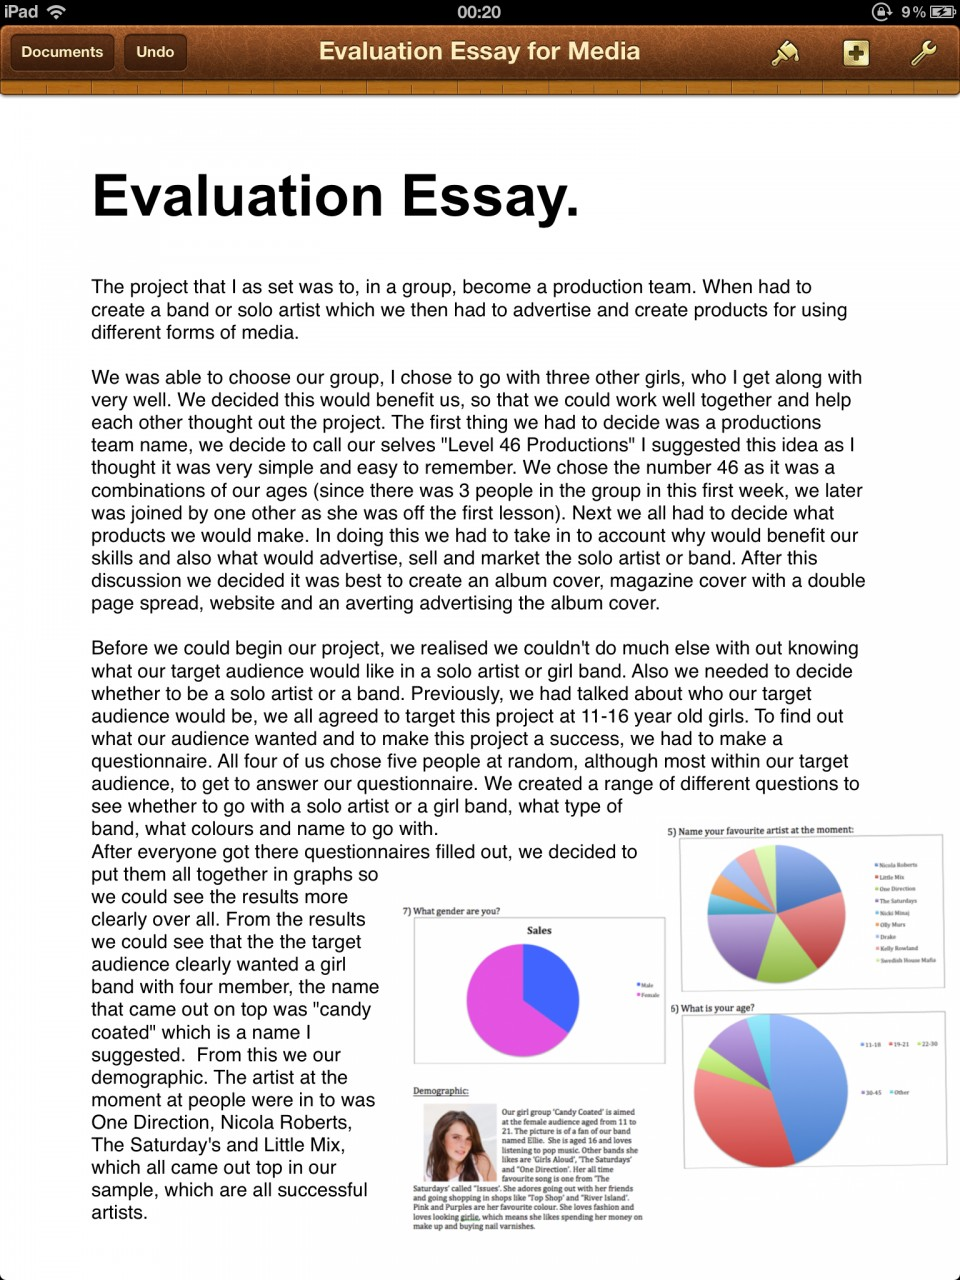 010 Pg Essay Example Incredible Evaluation Book Samples On Movies Self Format 960